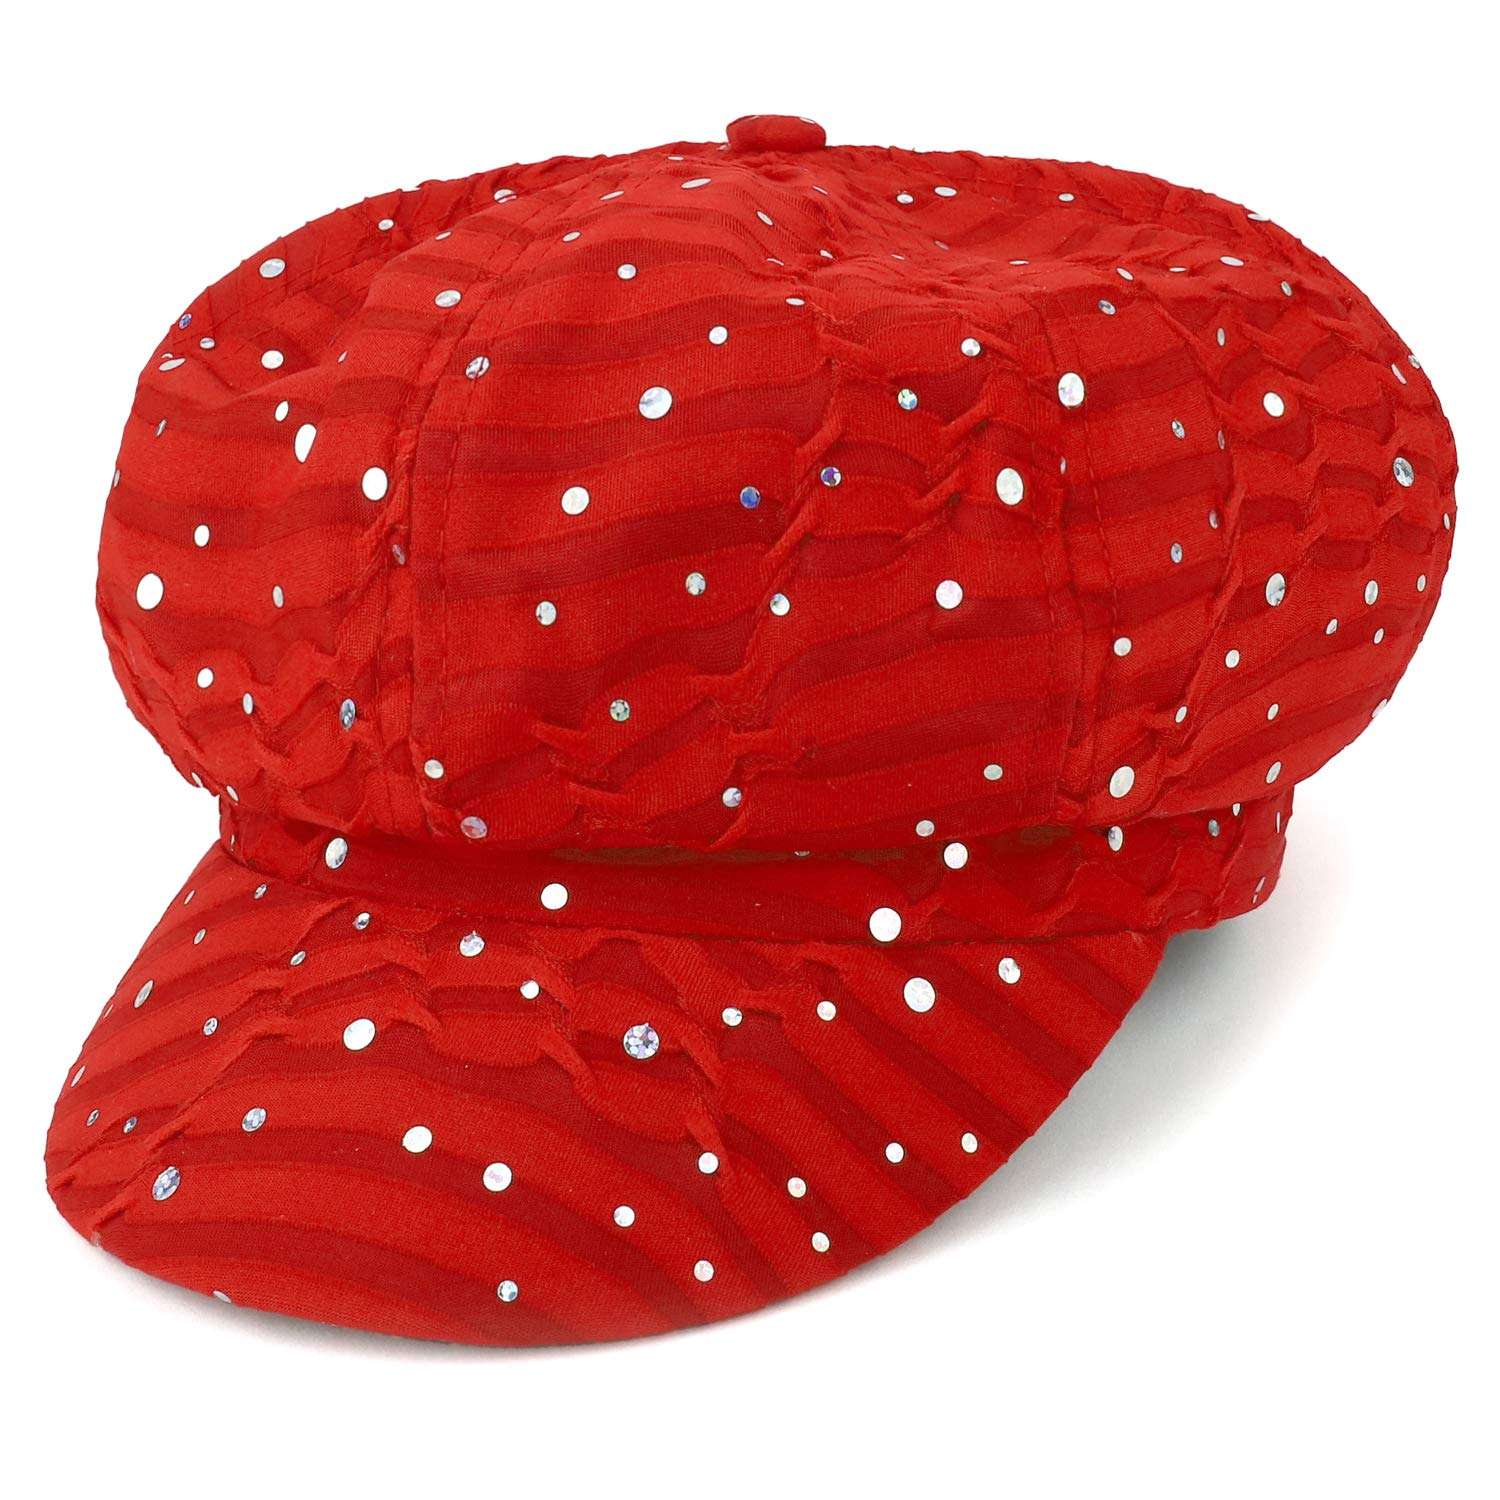 Armycrew Elastic Band Sparkle Sequin Glitter Newsboy Cap - Red